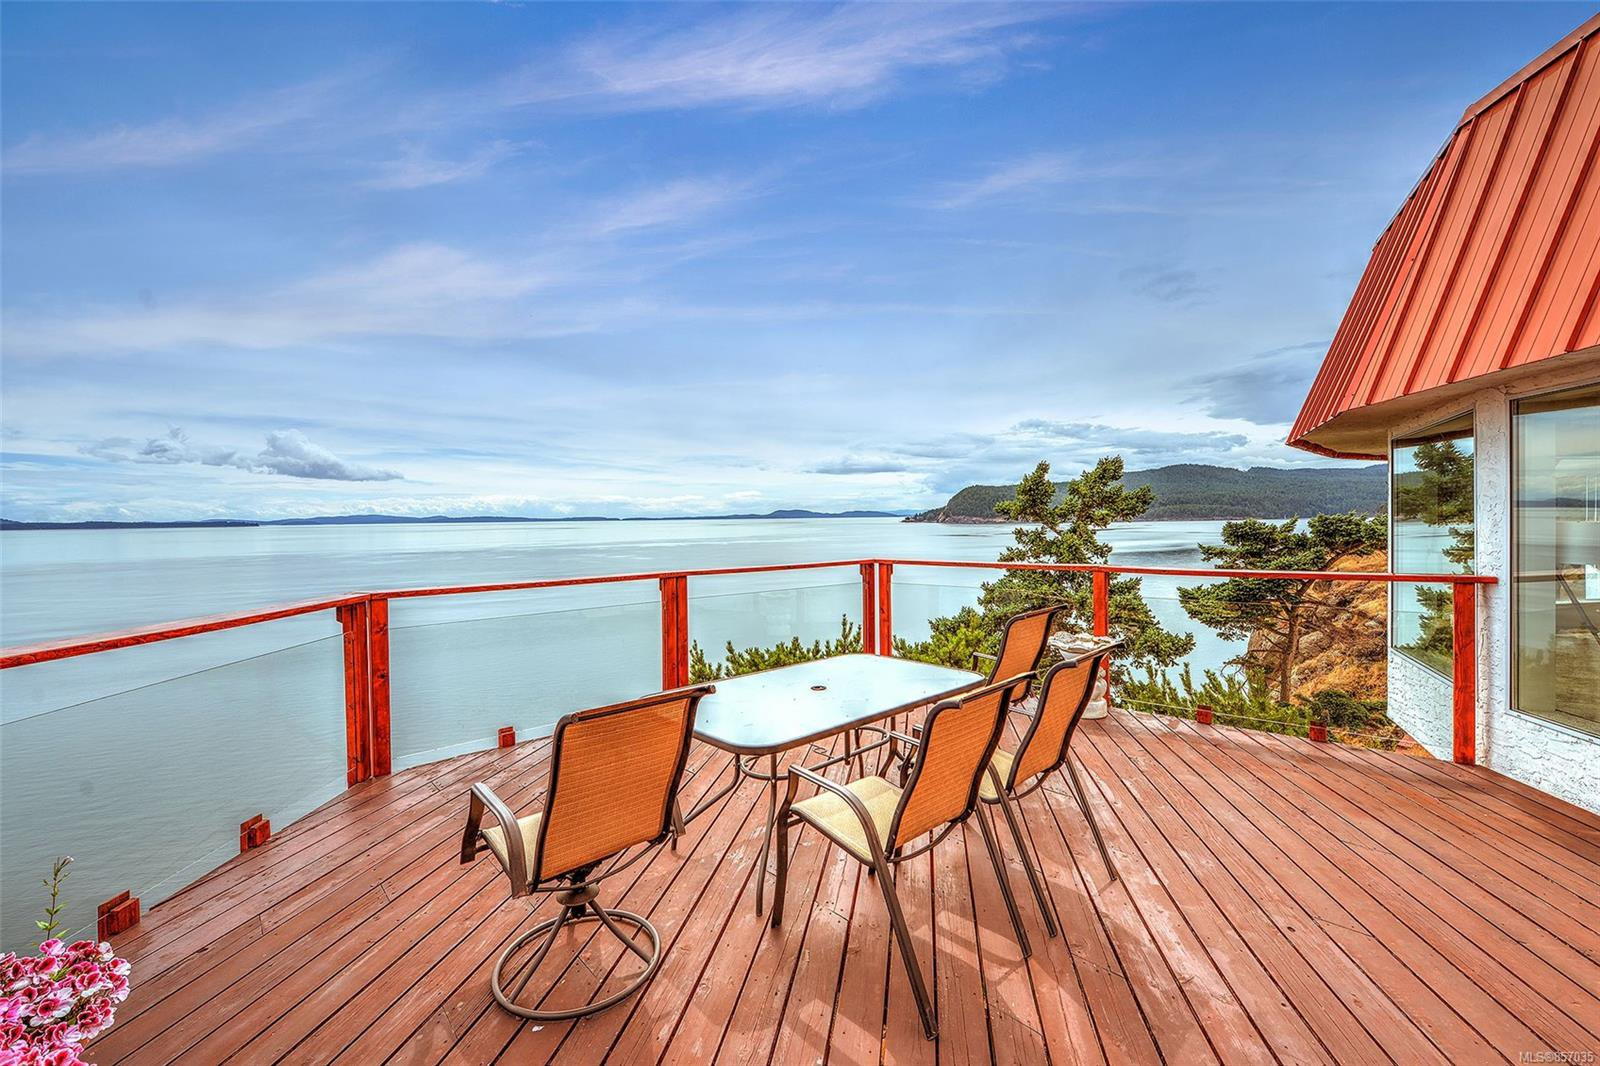 Photo 30: Photos: 172 Cliffside Rd in : GI Saturna Island House for sale (Gulf Islands)  : MLS®# 857035